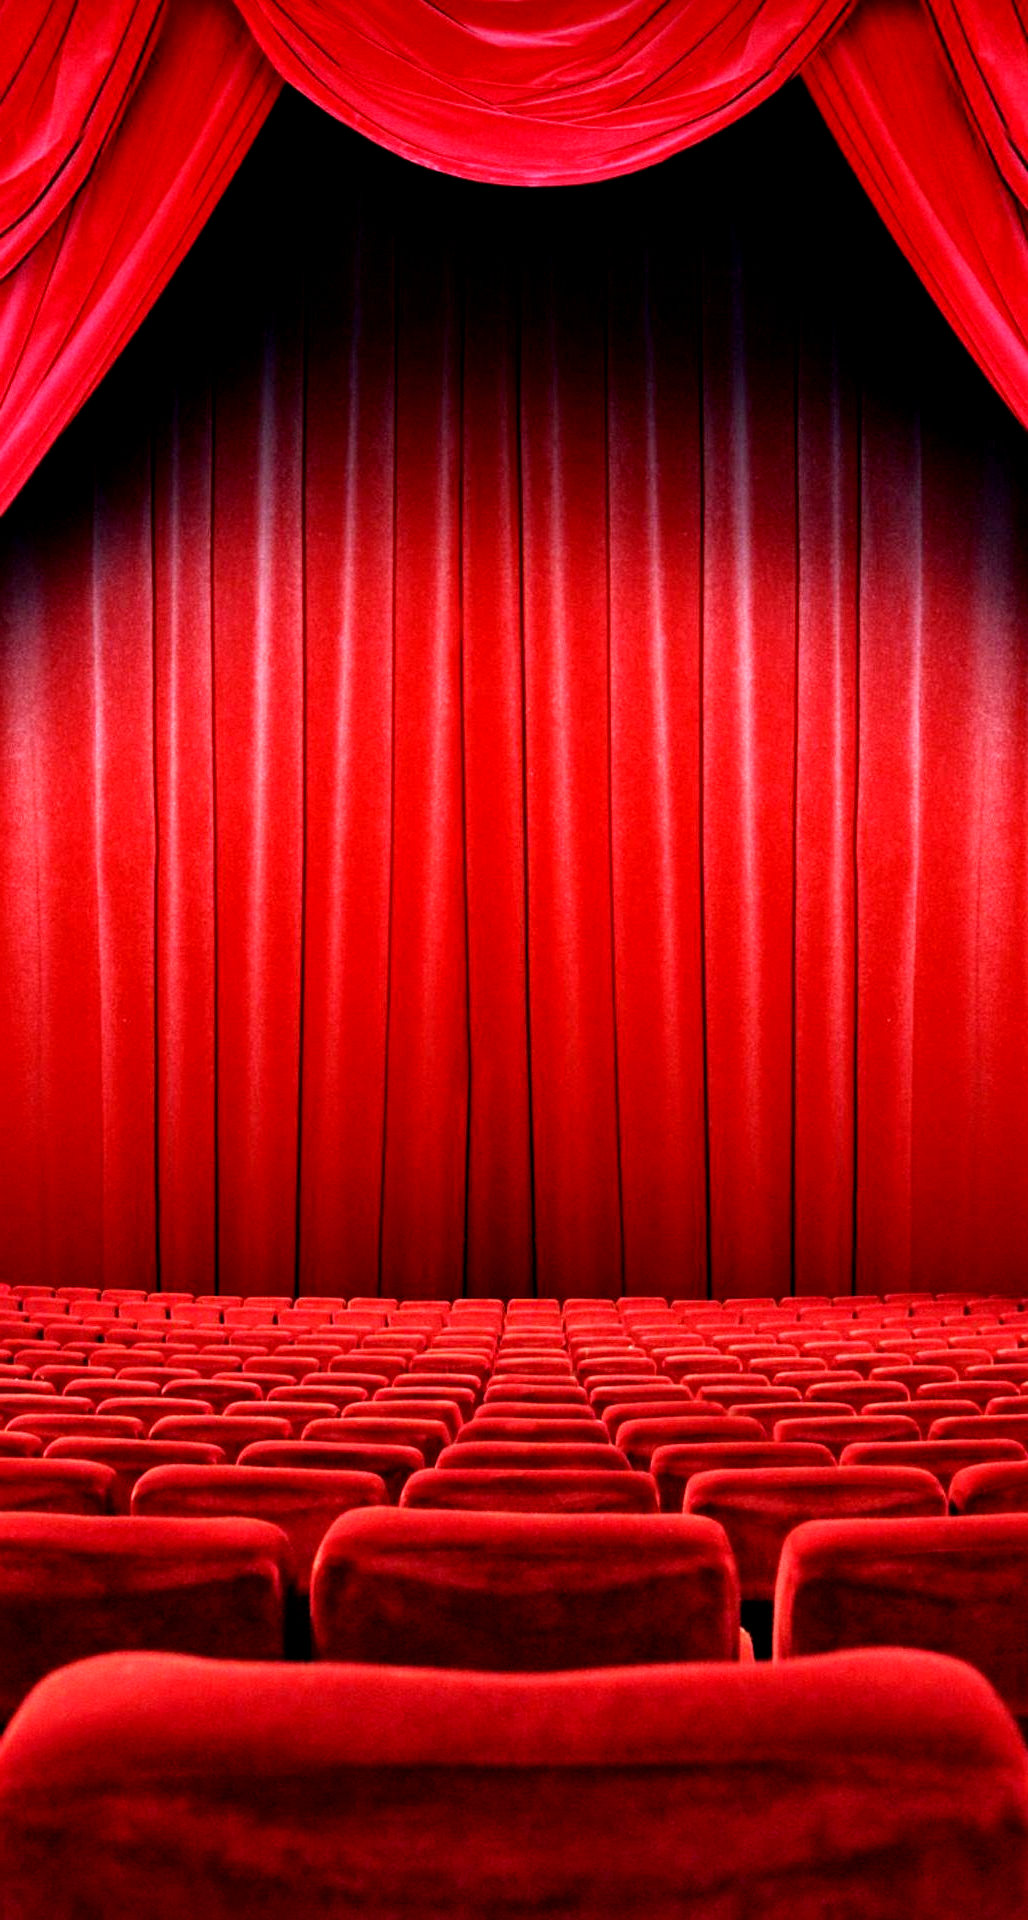 Theater Wallpaper 41 Movie Theater Wallpapers On Wallpaperplay Theater Backgrounds Wallpaper Cave Pin By Clarisse Edwards On In 2020 Movie Theater Wallpaper Movies